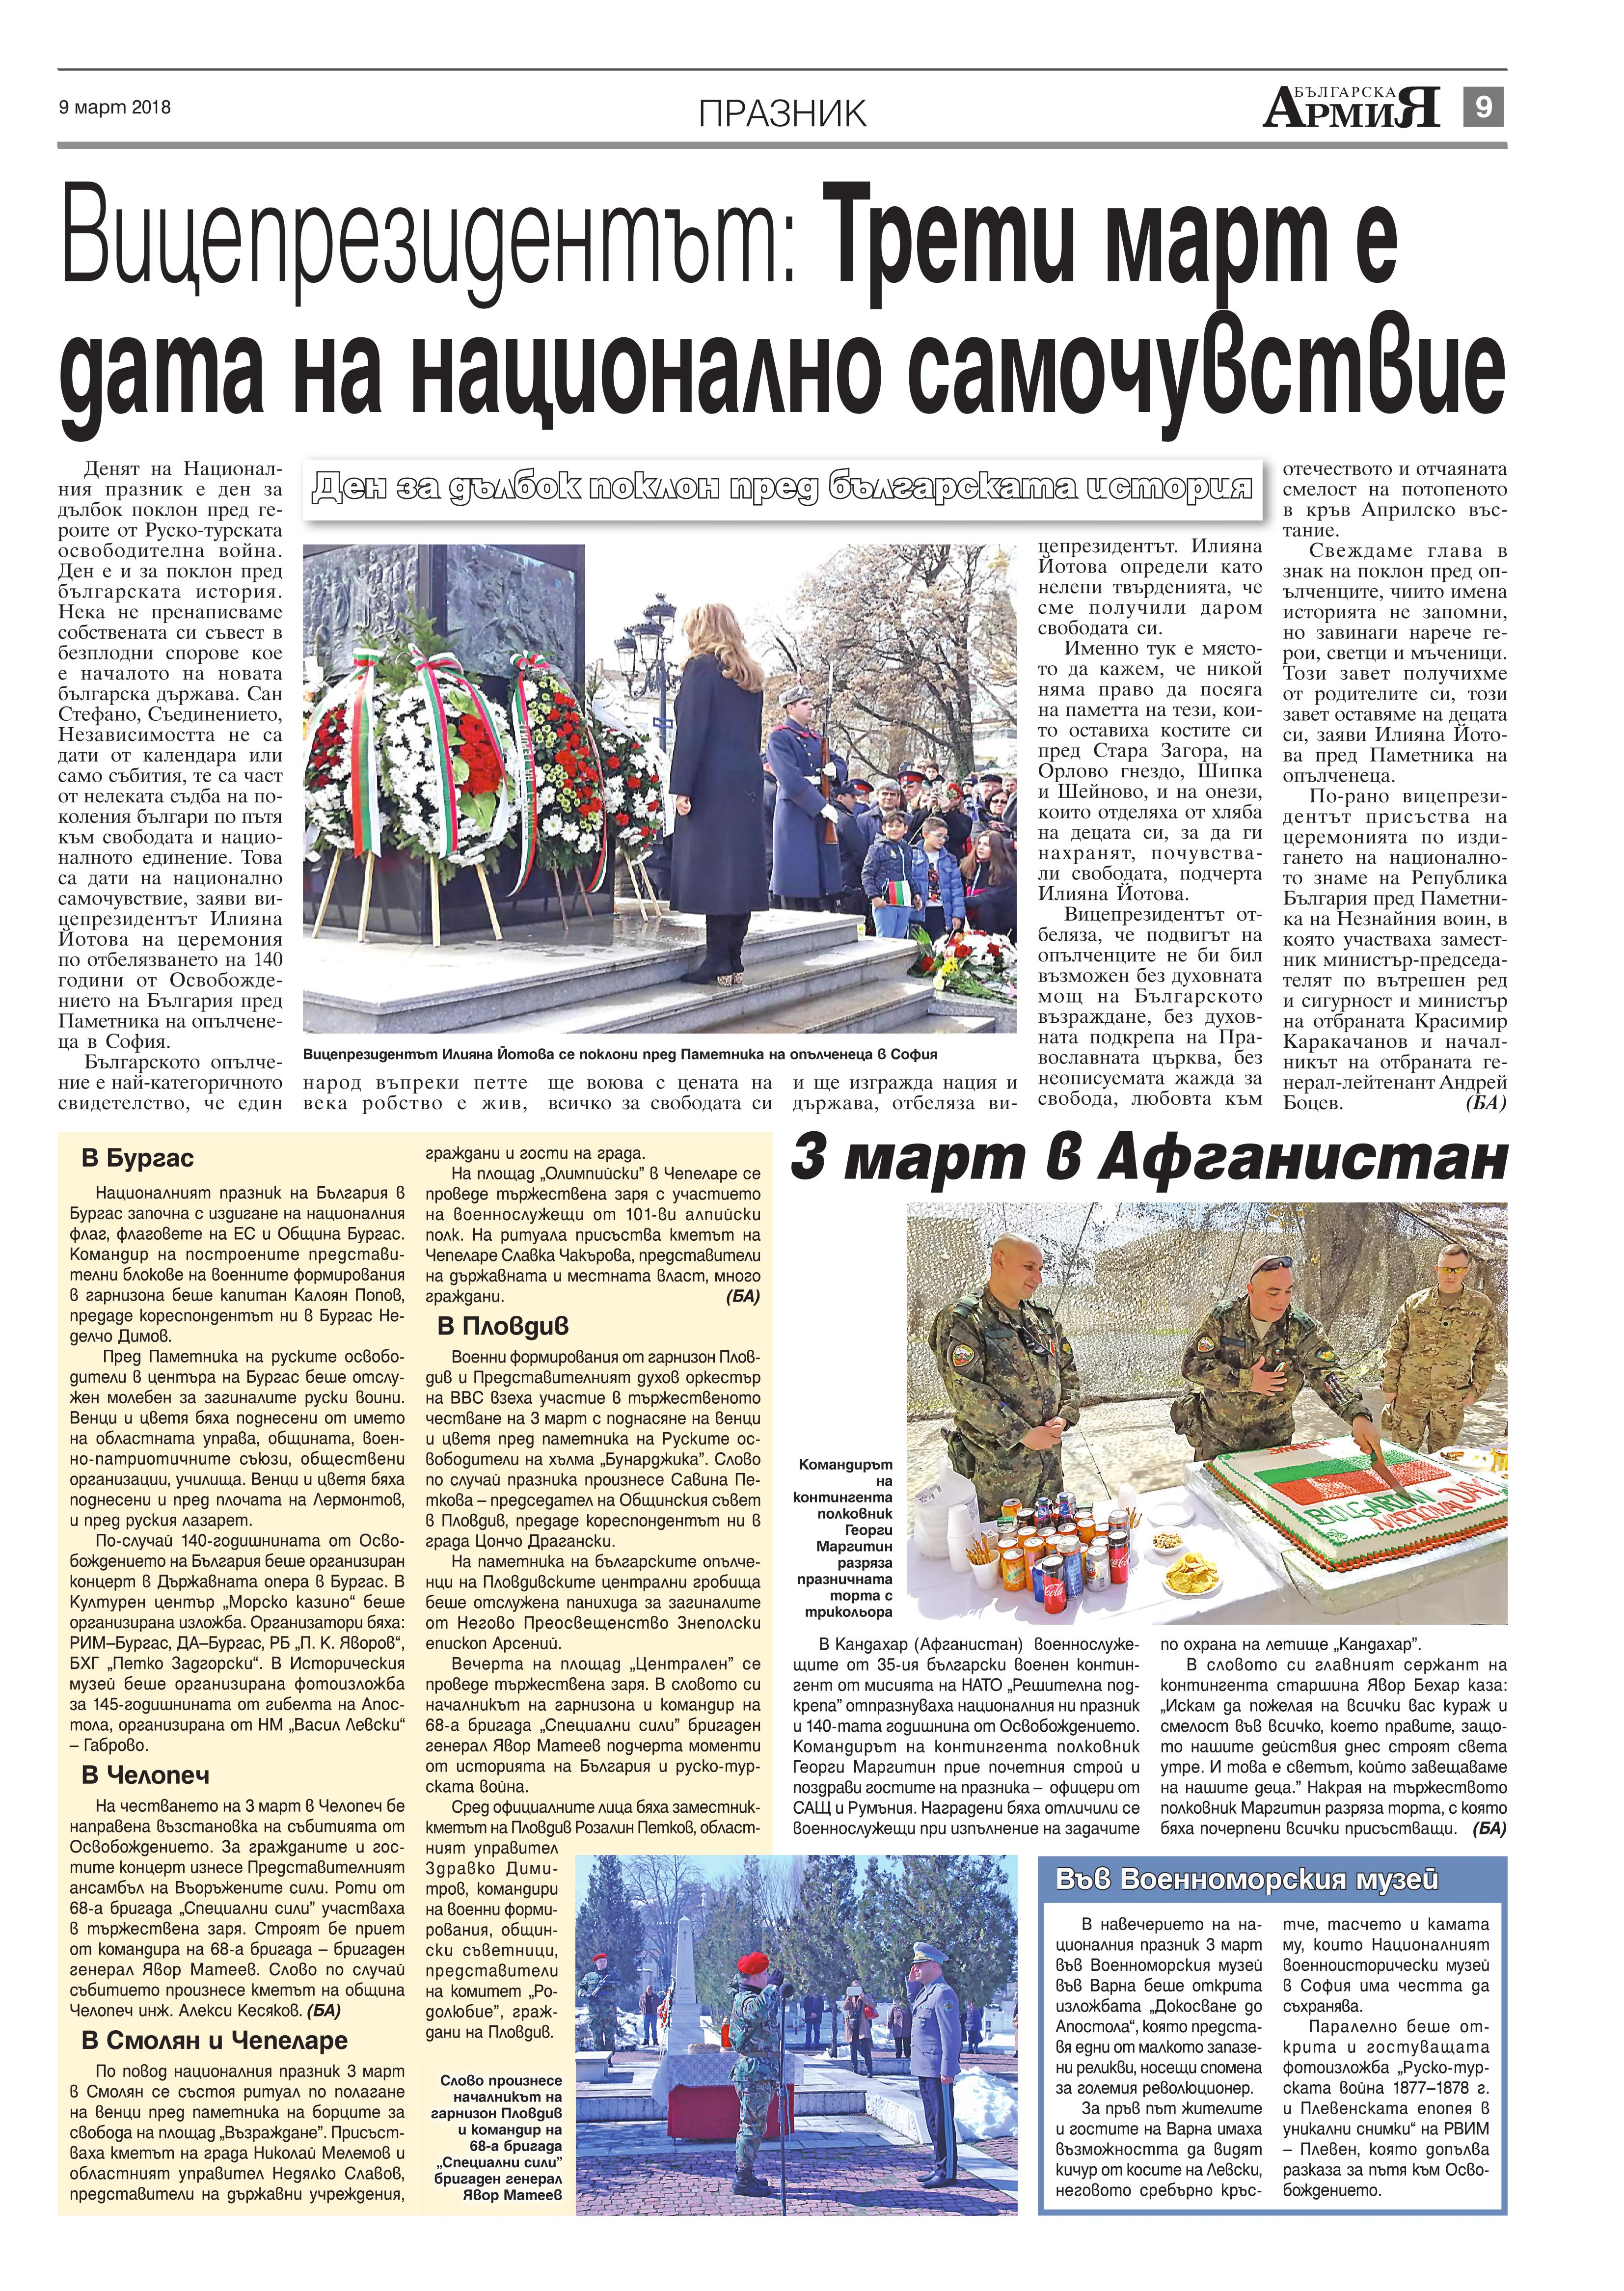 https://armymedia.bg/wp-content/uploads/2015/06/09.page1_-40.jpg